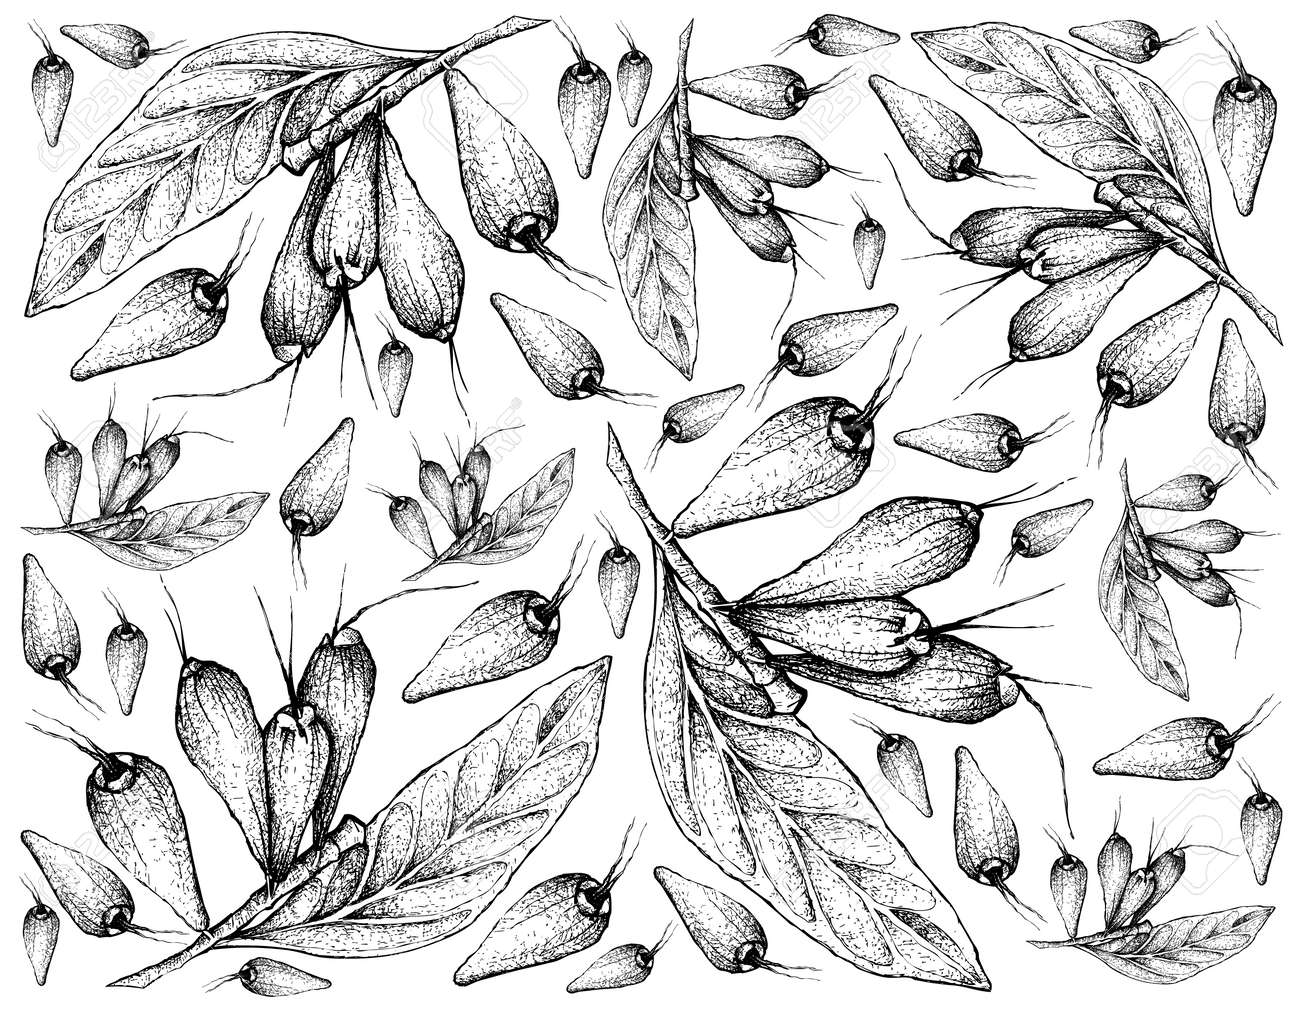 Tropical Fruits Illustration Wallpaper Of Hand Drawn Sketch Stock Photo Picture And Royalty Free Image Image 119631448